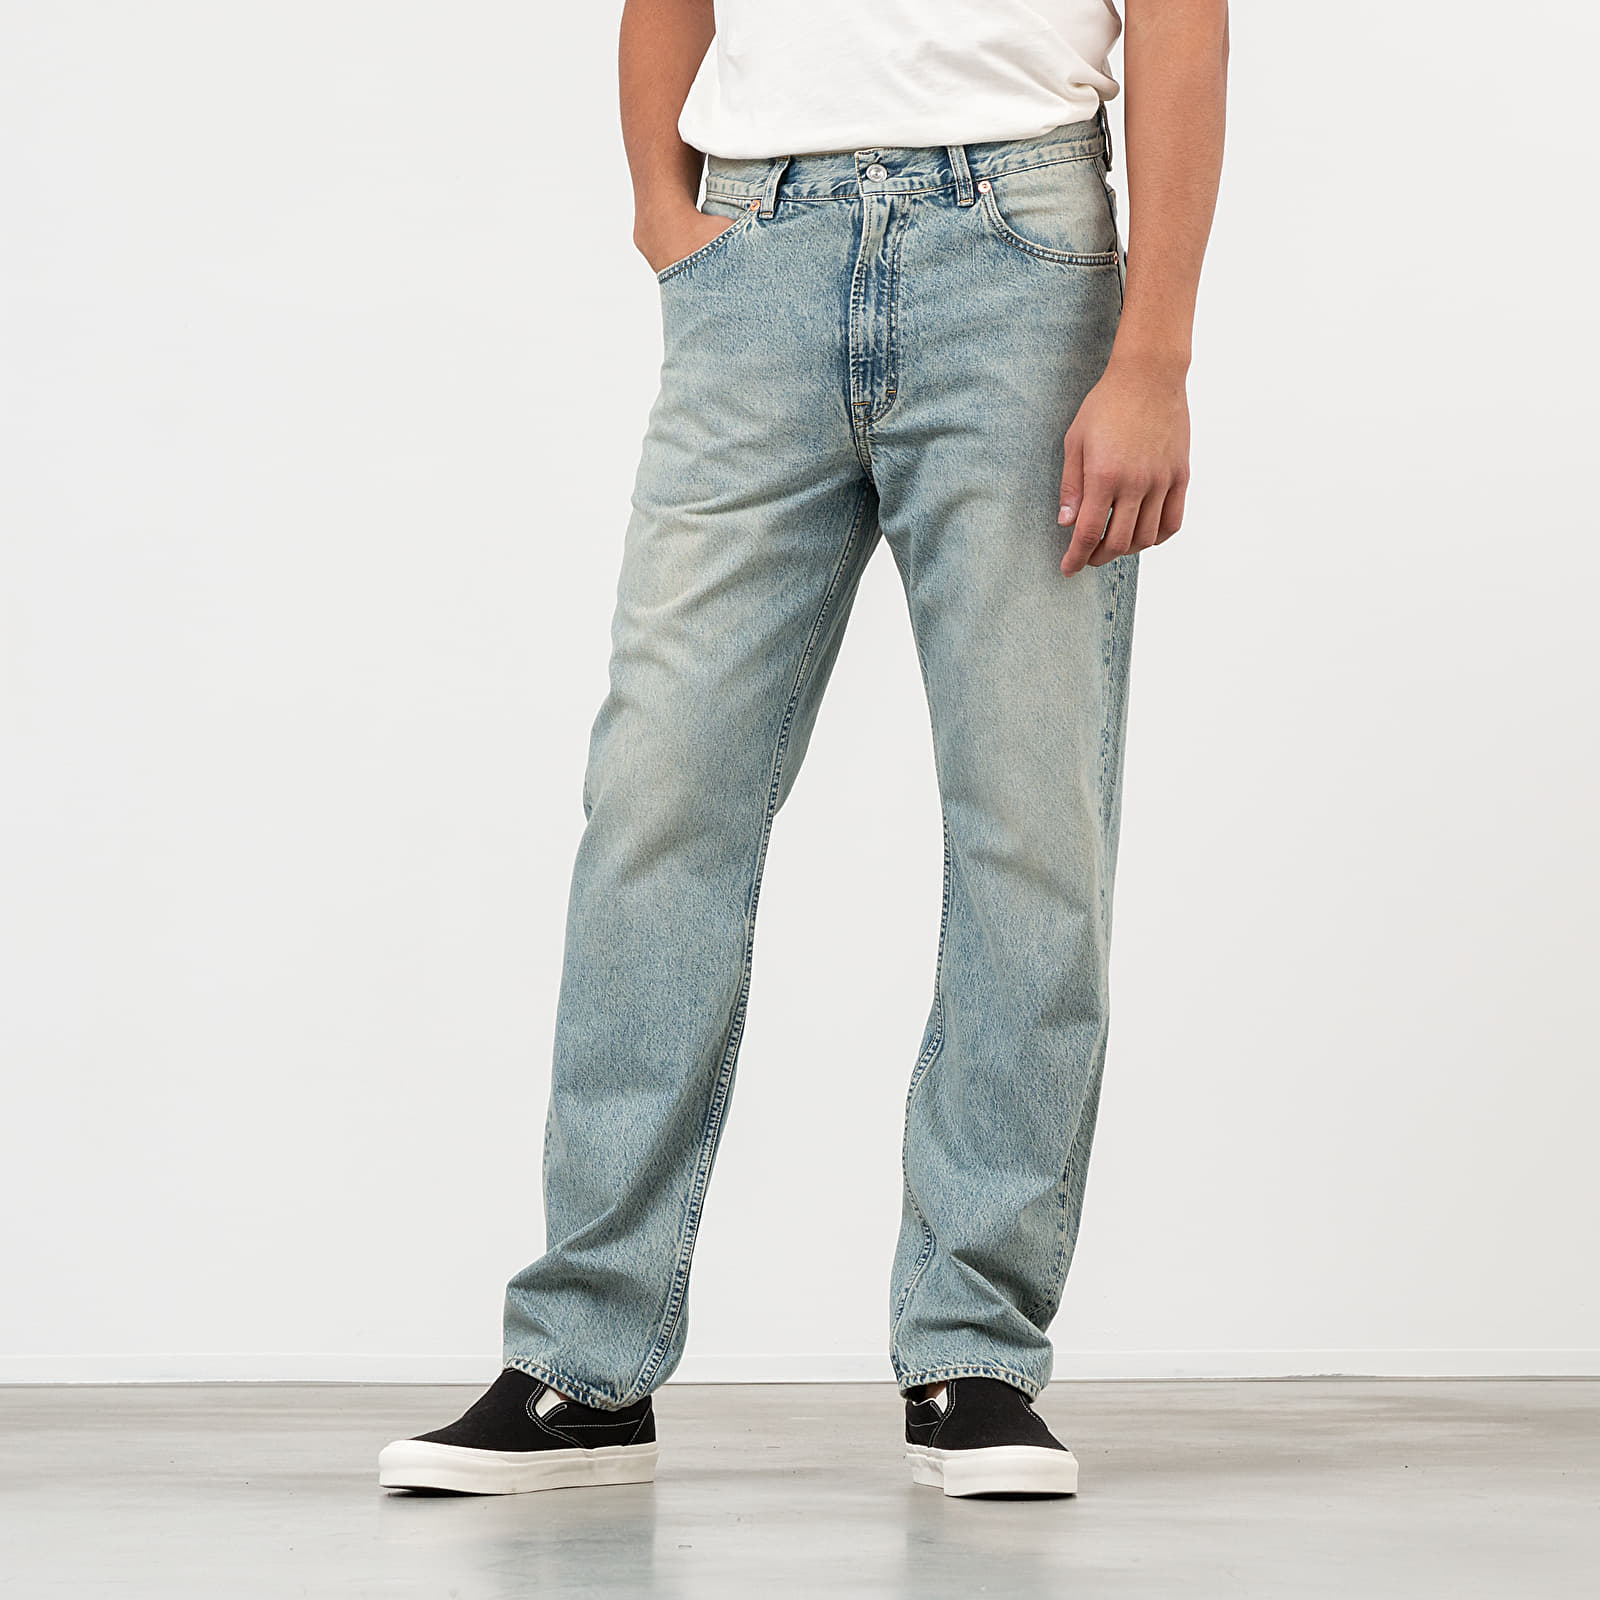 Our Legacy Second Cut Jeans